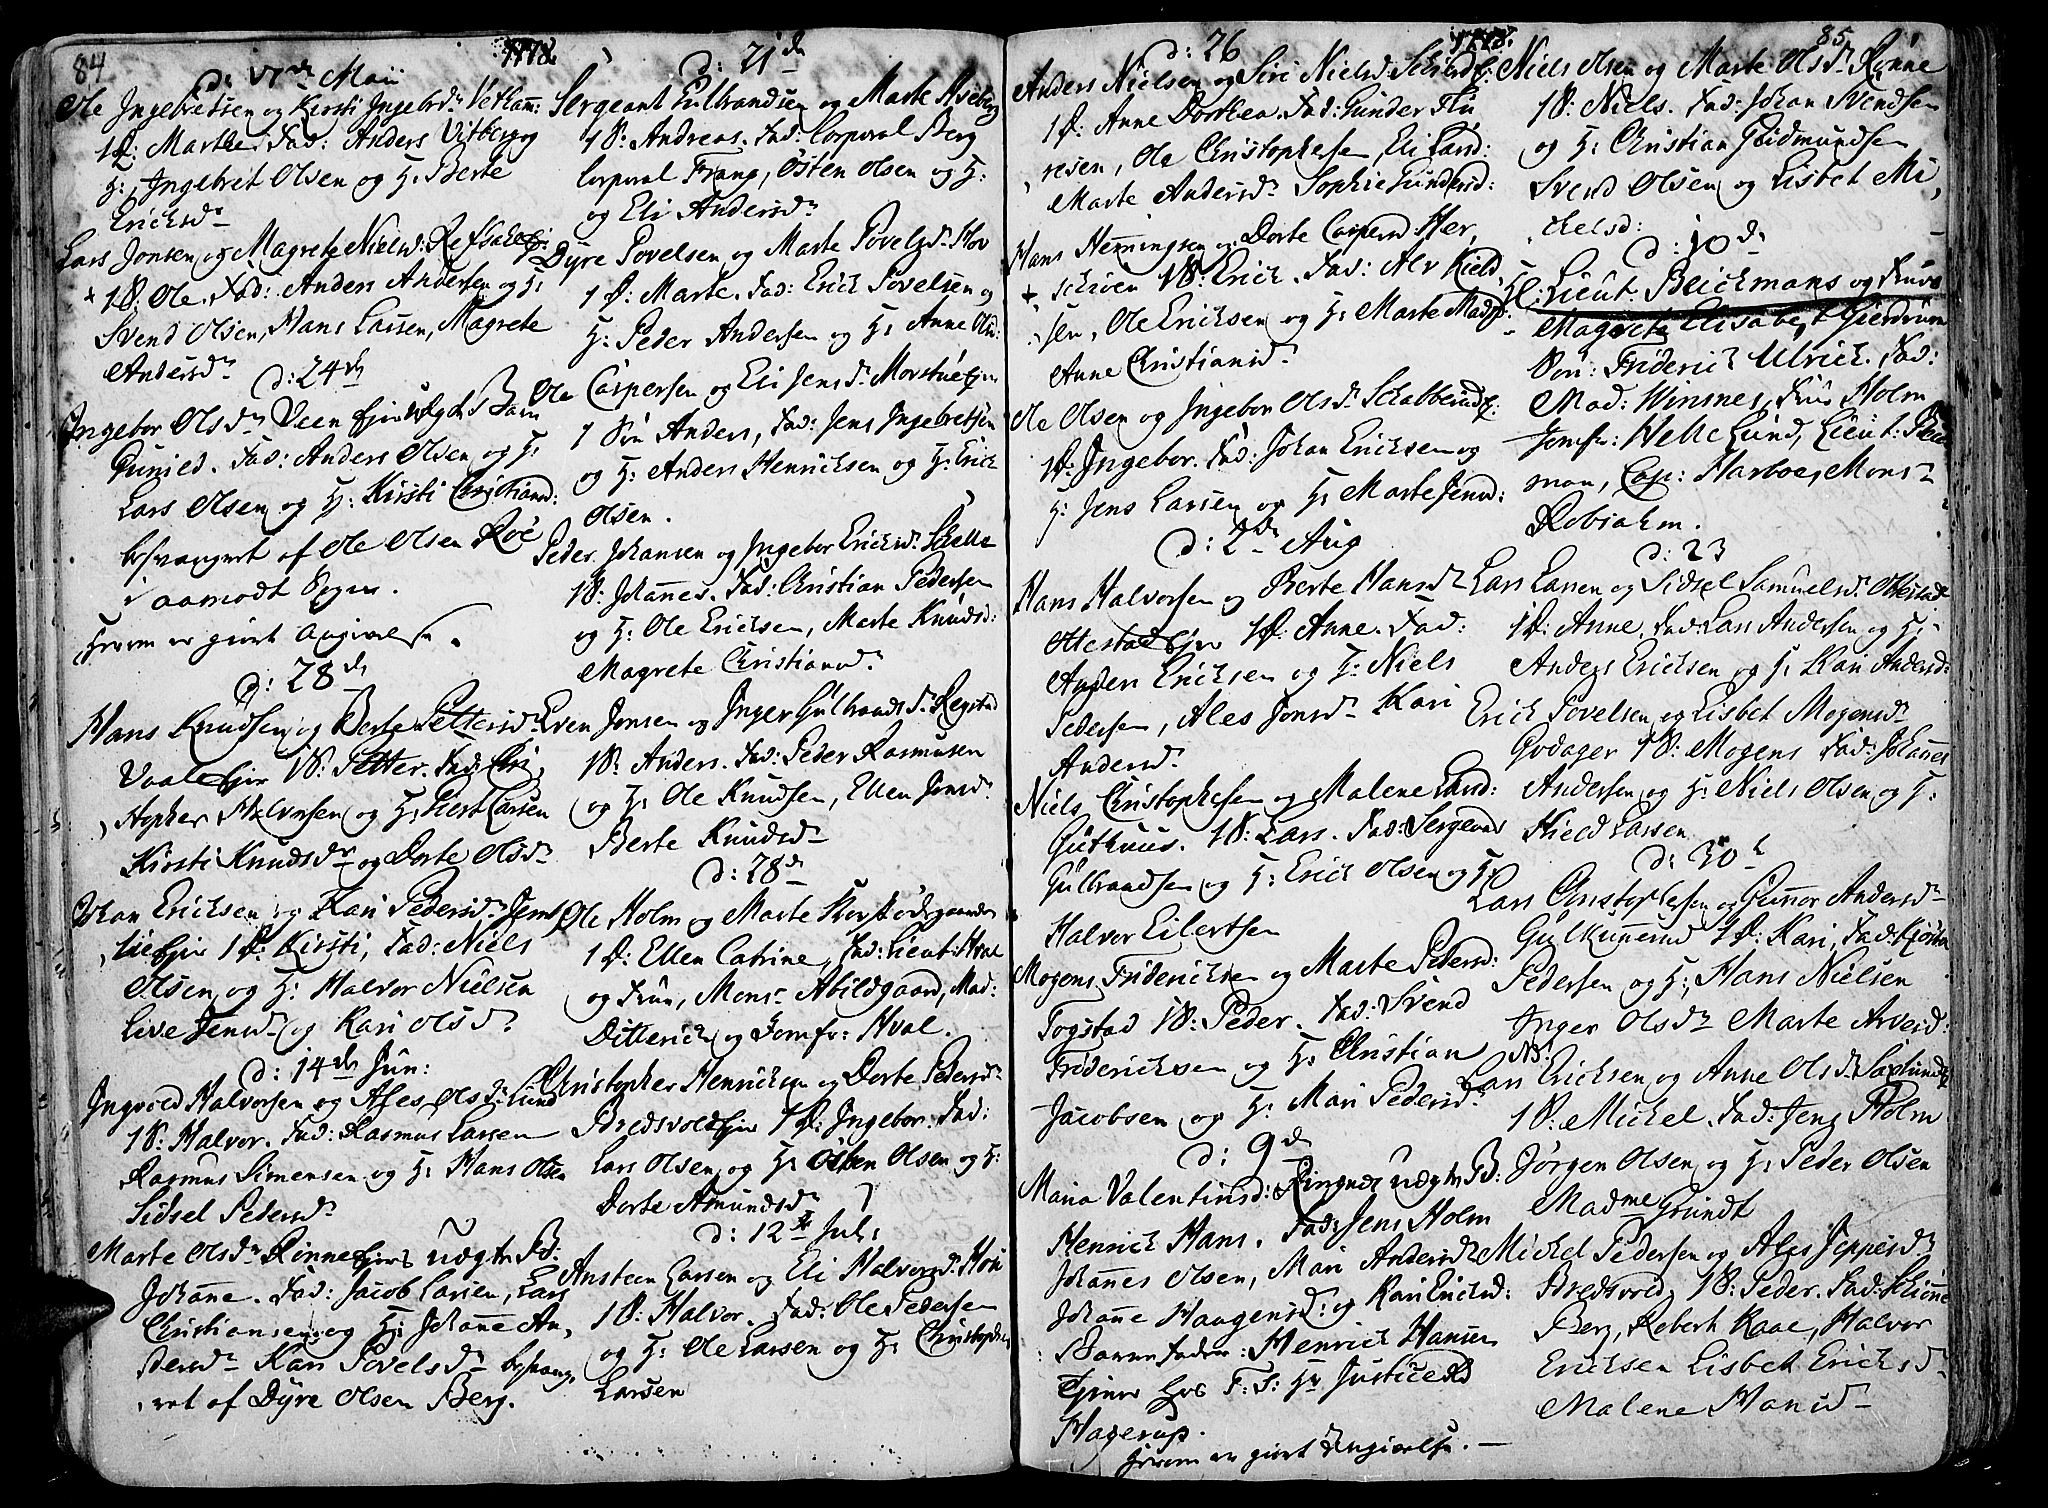 SAH, Stange prestekontor, K/L0006: Parish register (official) no. 6, 1762-1787, p. 84-85